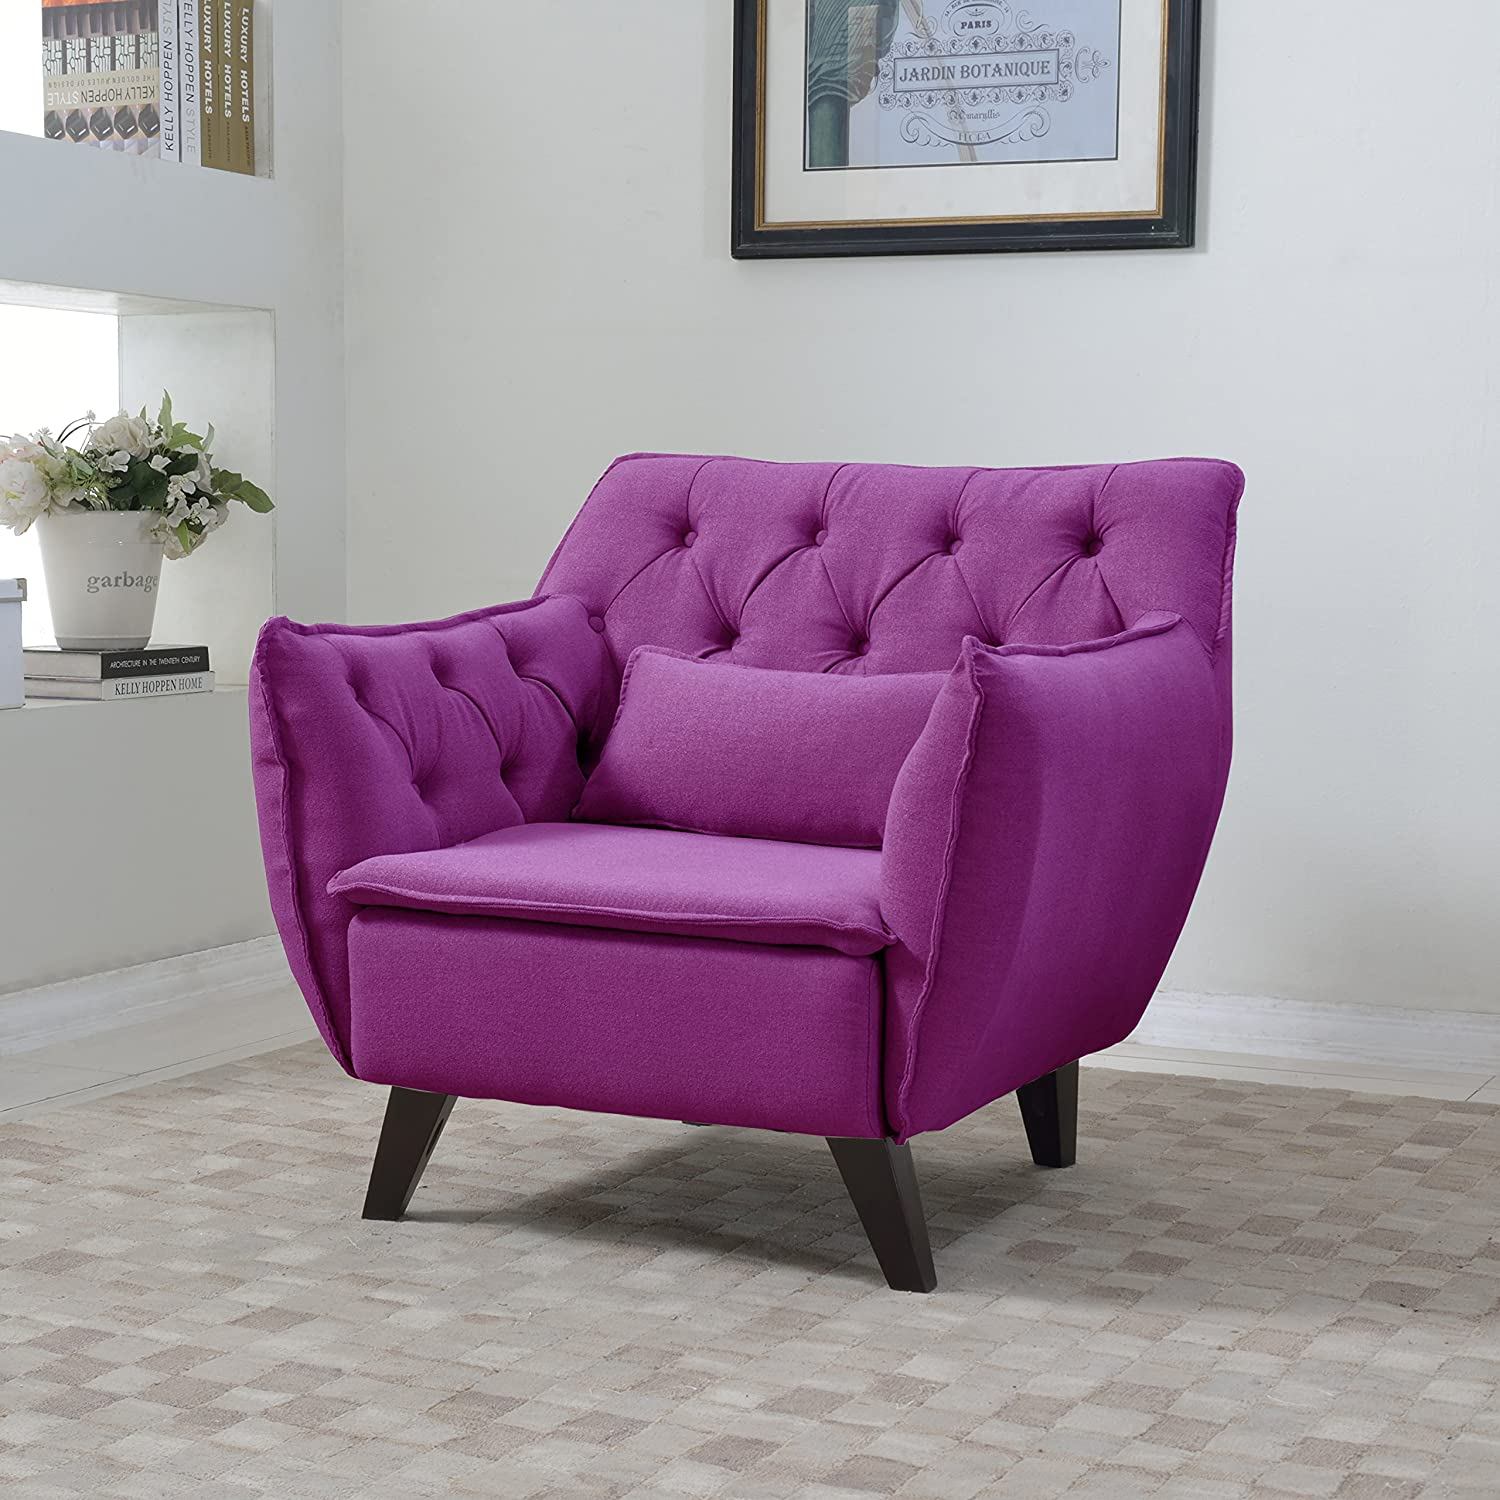 Big Purple Chair For Living Room Make It Look Royal And Luxurious